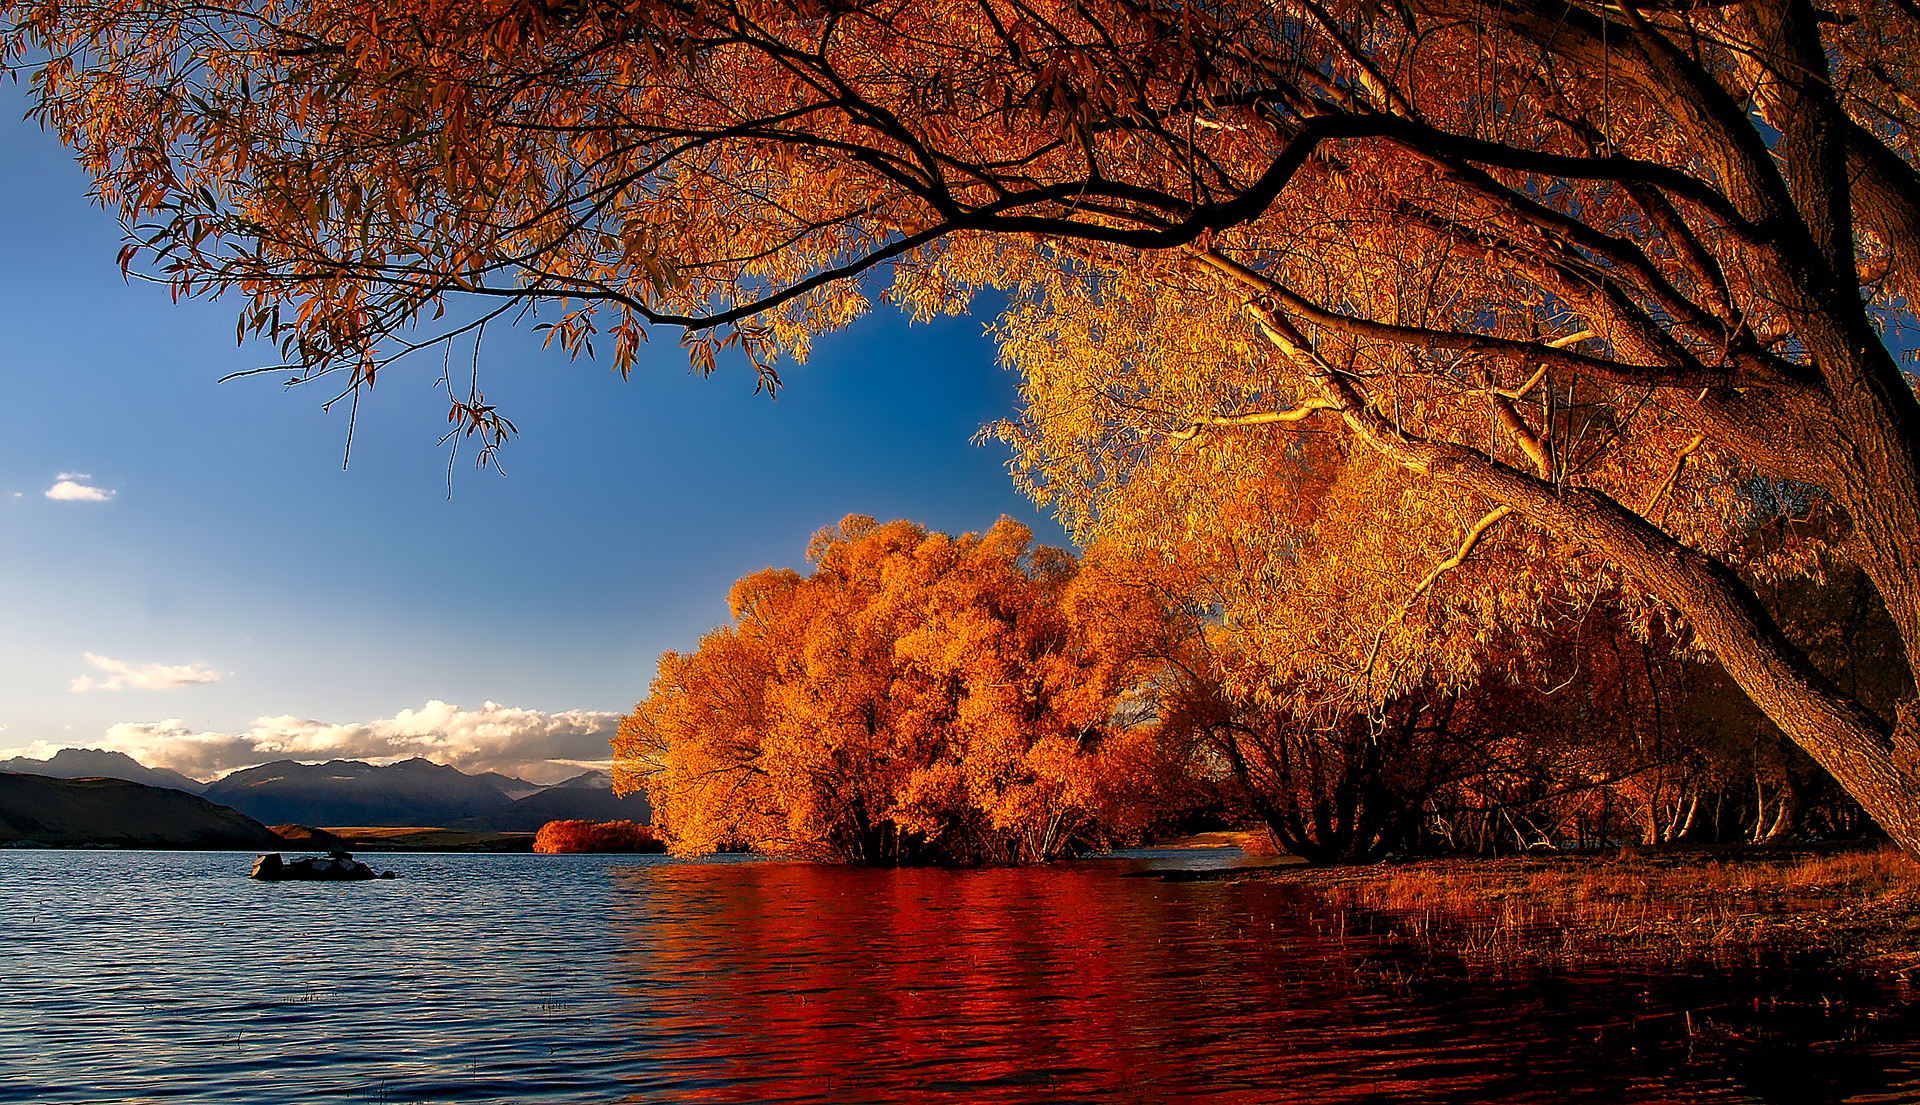 The NZILA president says the planned tourism levy makes sense if it helps conserve popular tourist spots like Lake Tekapo pictured here.